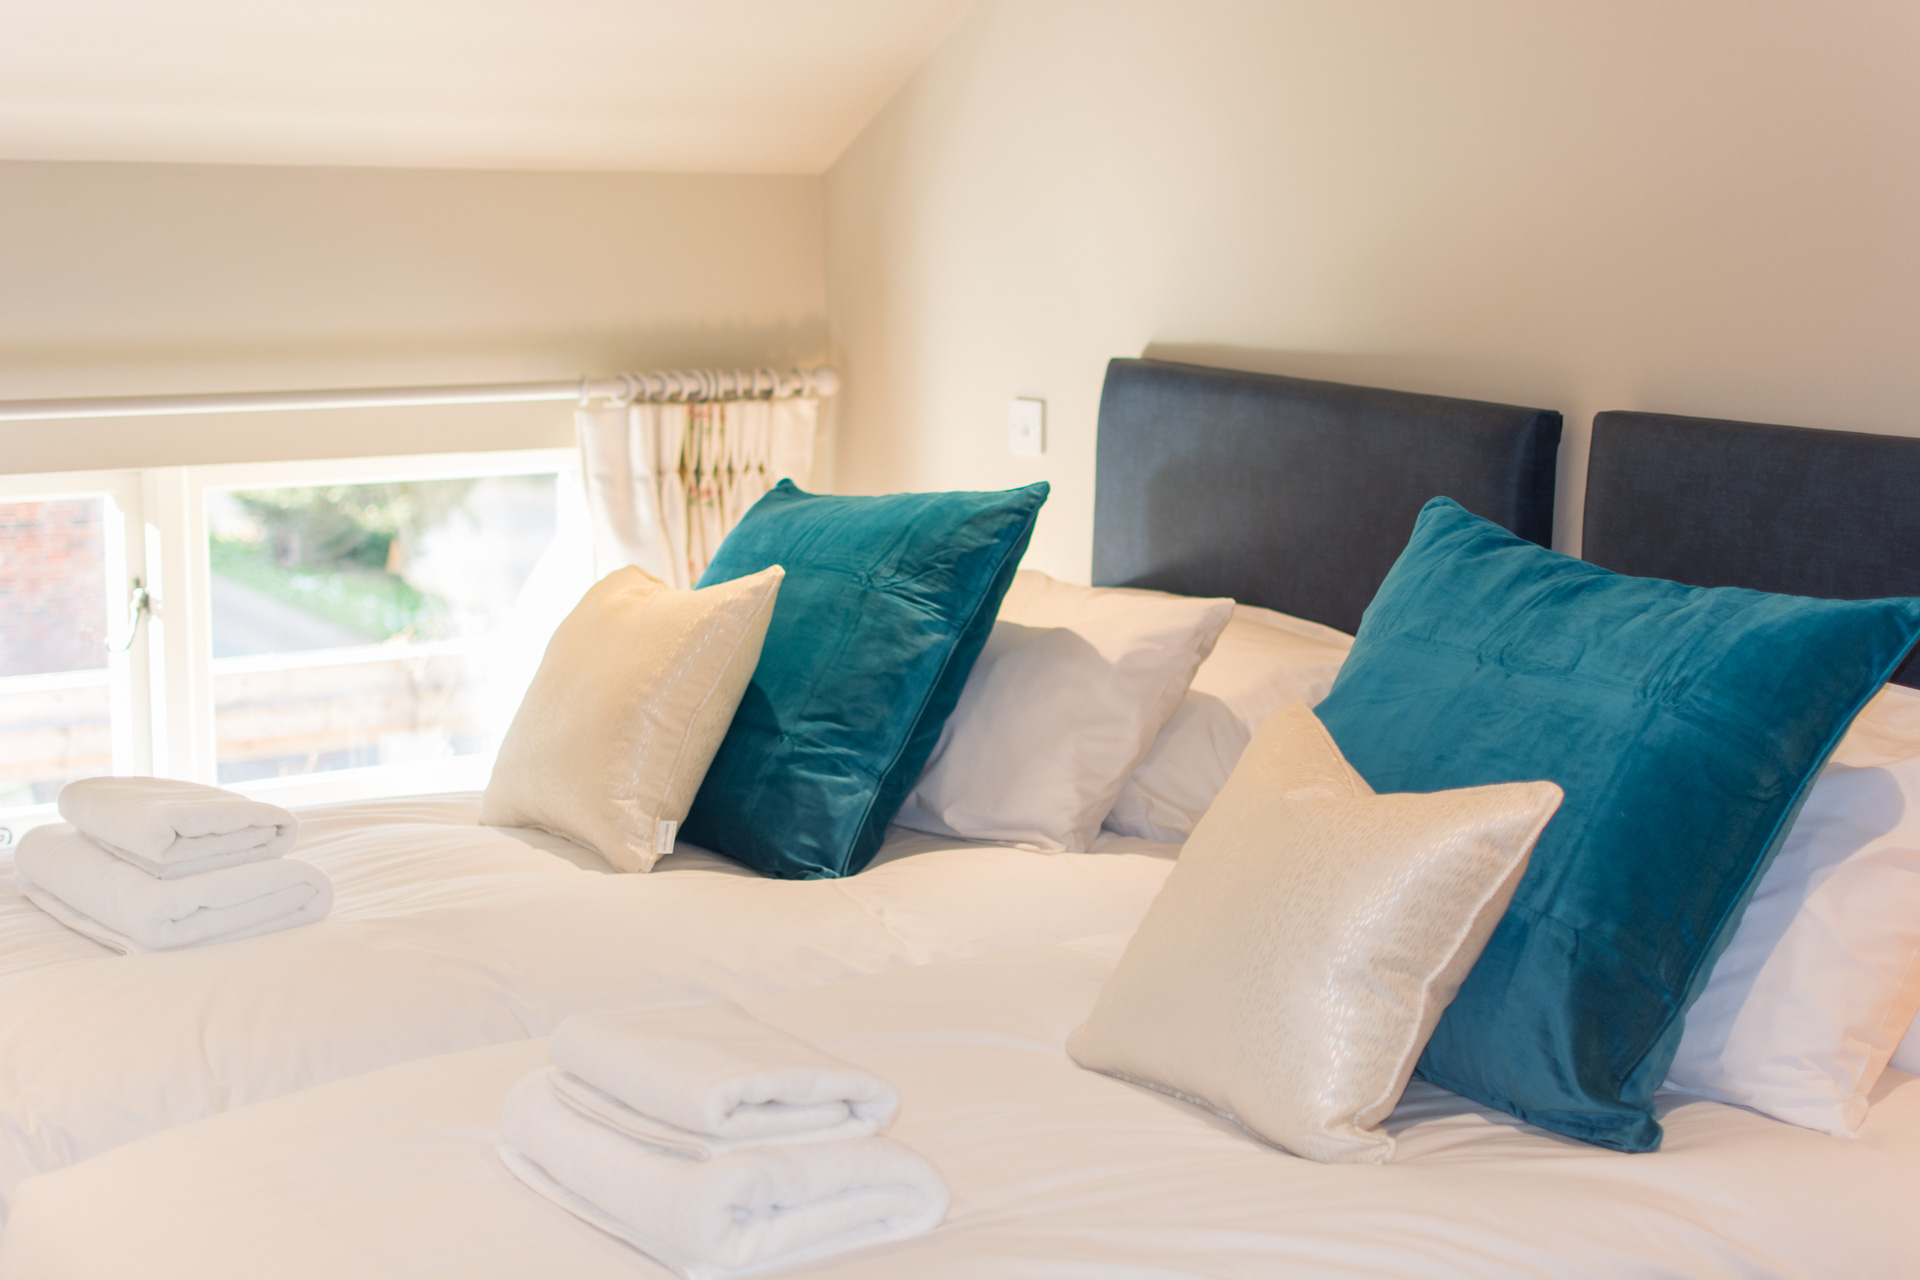 Upstairs twin room with white linen and large blue pillows.